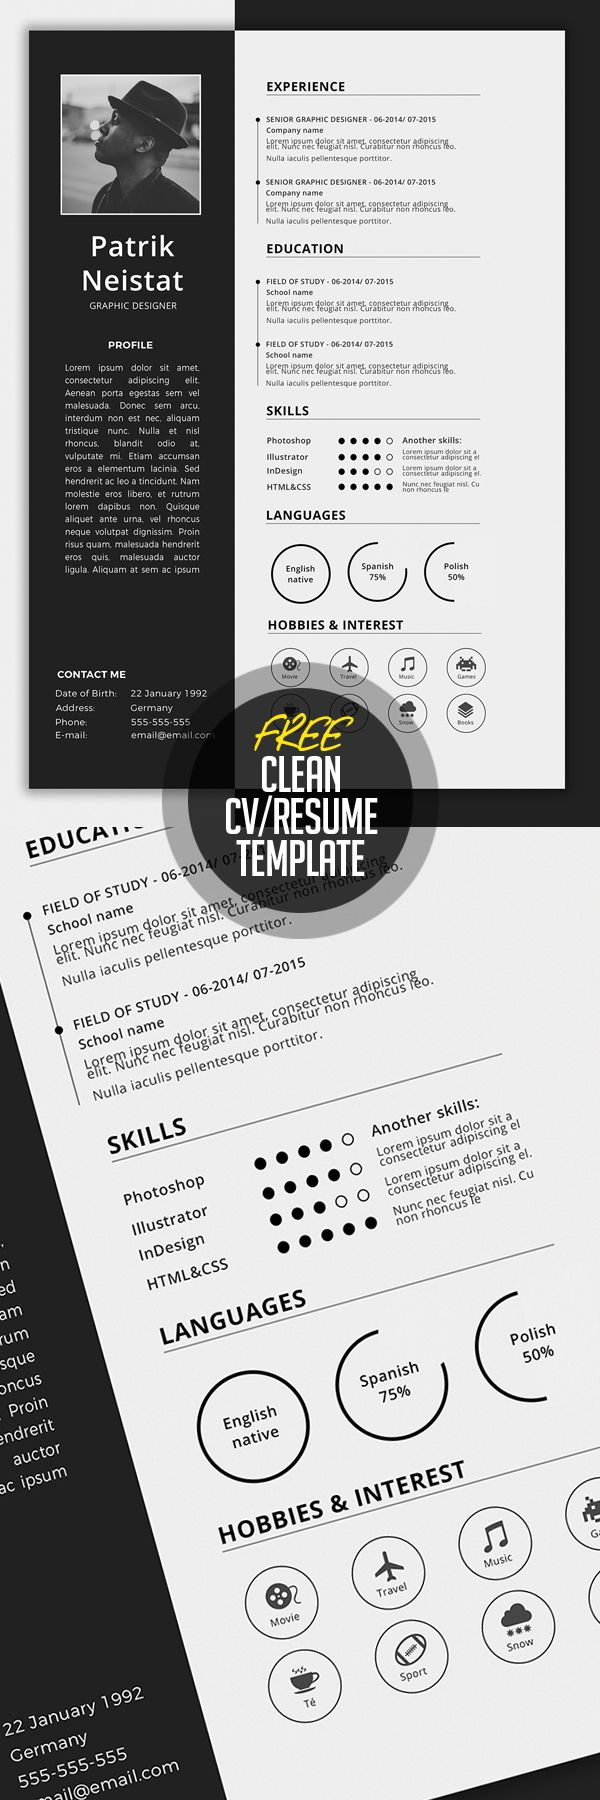 Simple CvResume Template Free Download   Things T